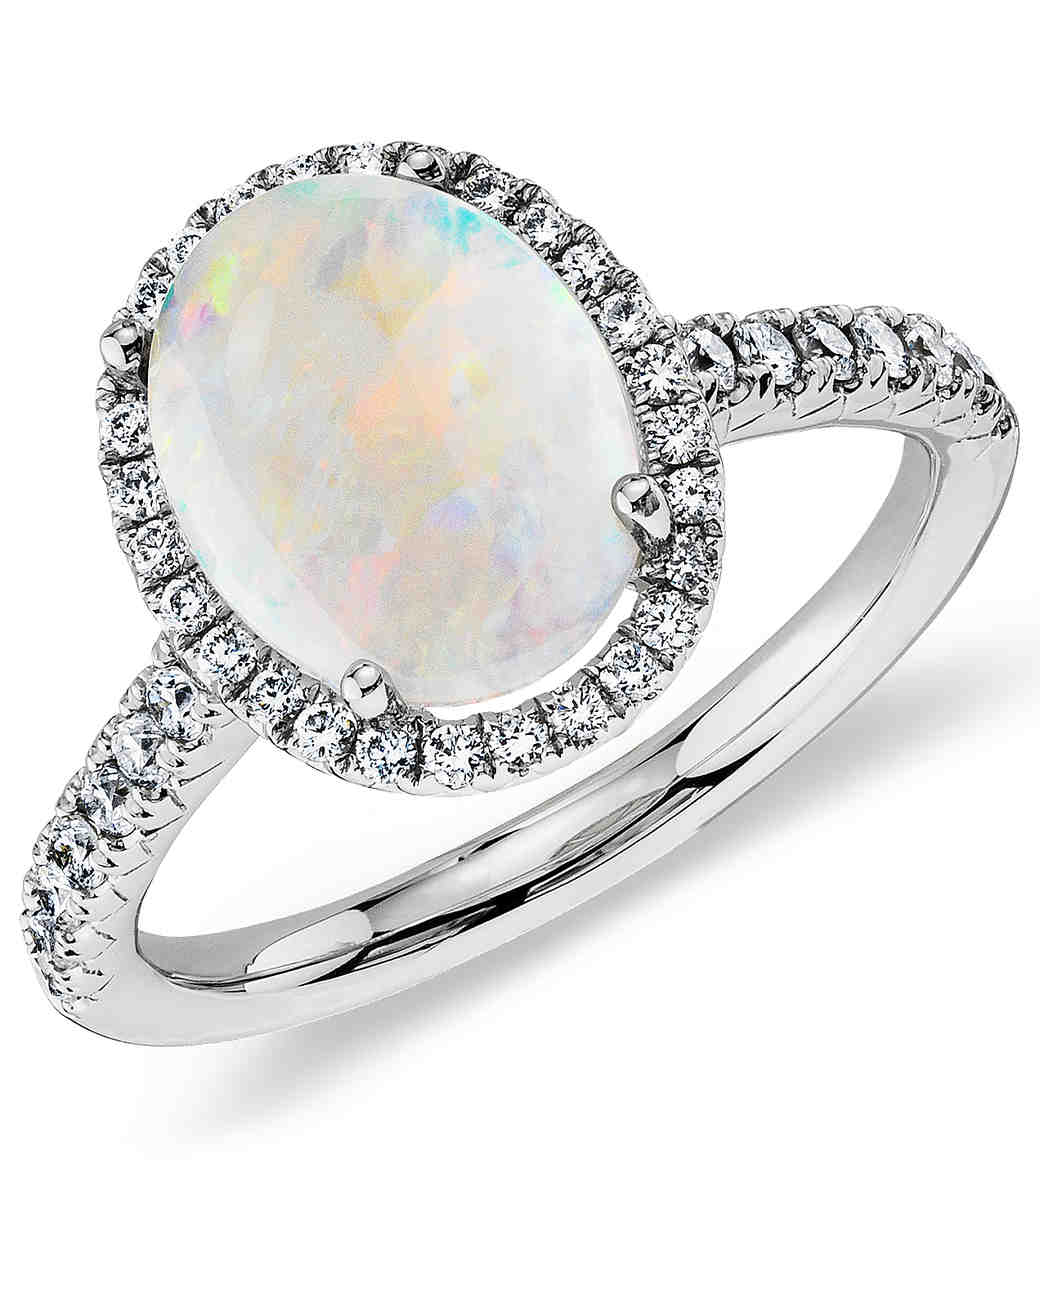 Opal Engagement Rings That Are Oh So Dreamy